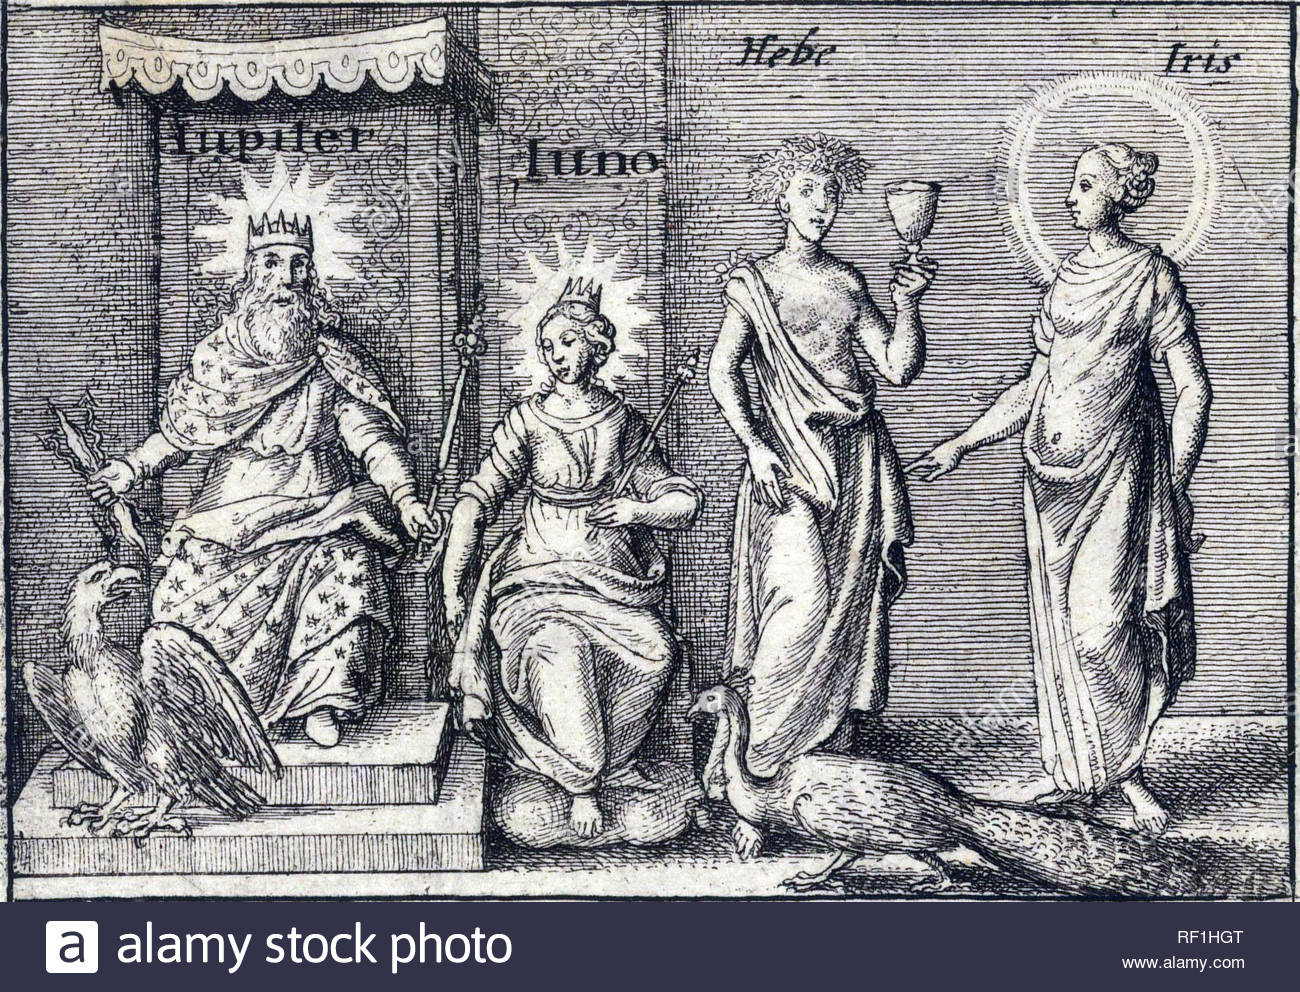 Roman gods Jupiter and Juno and Greek Gods Hebe and Iris, etching by Bohemian etcher Wenceslaus Hollar from 1600s - Stock Image